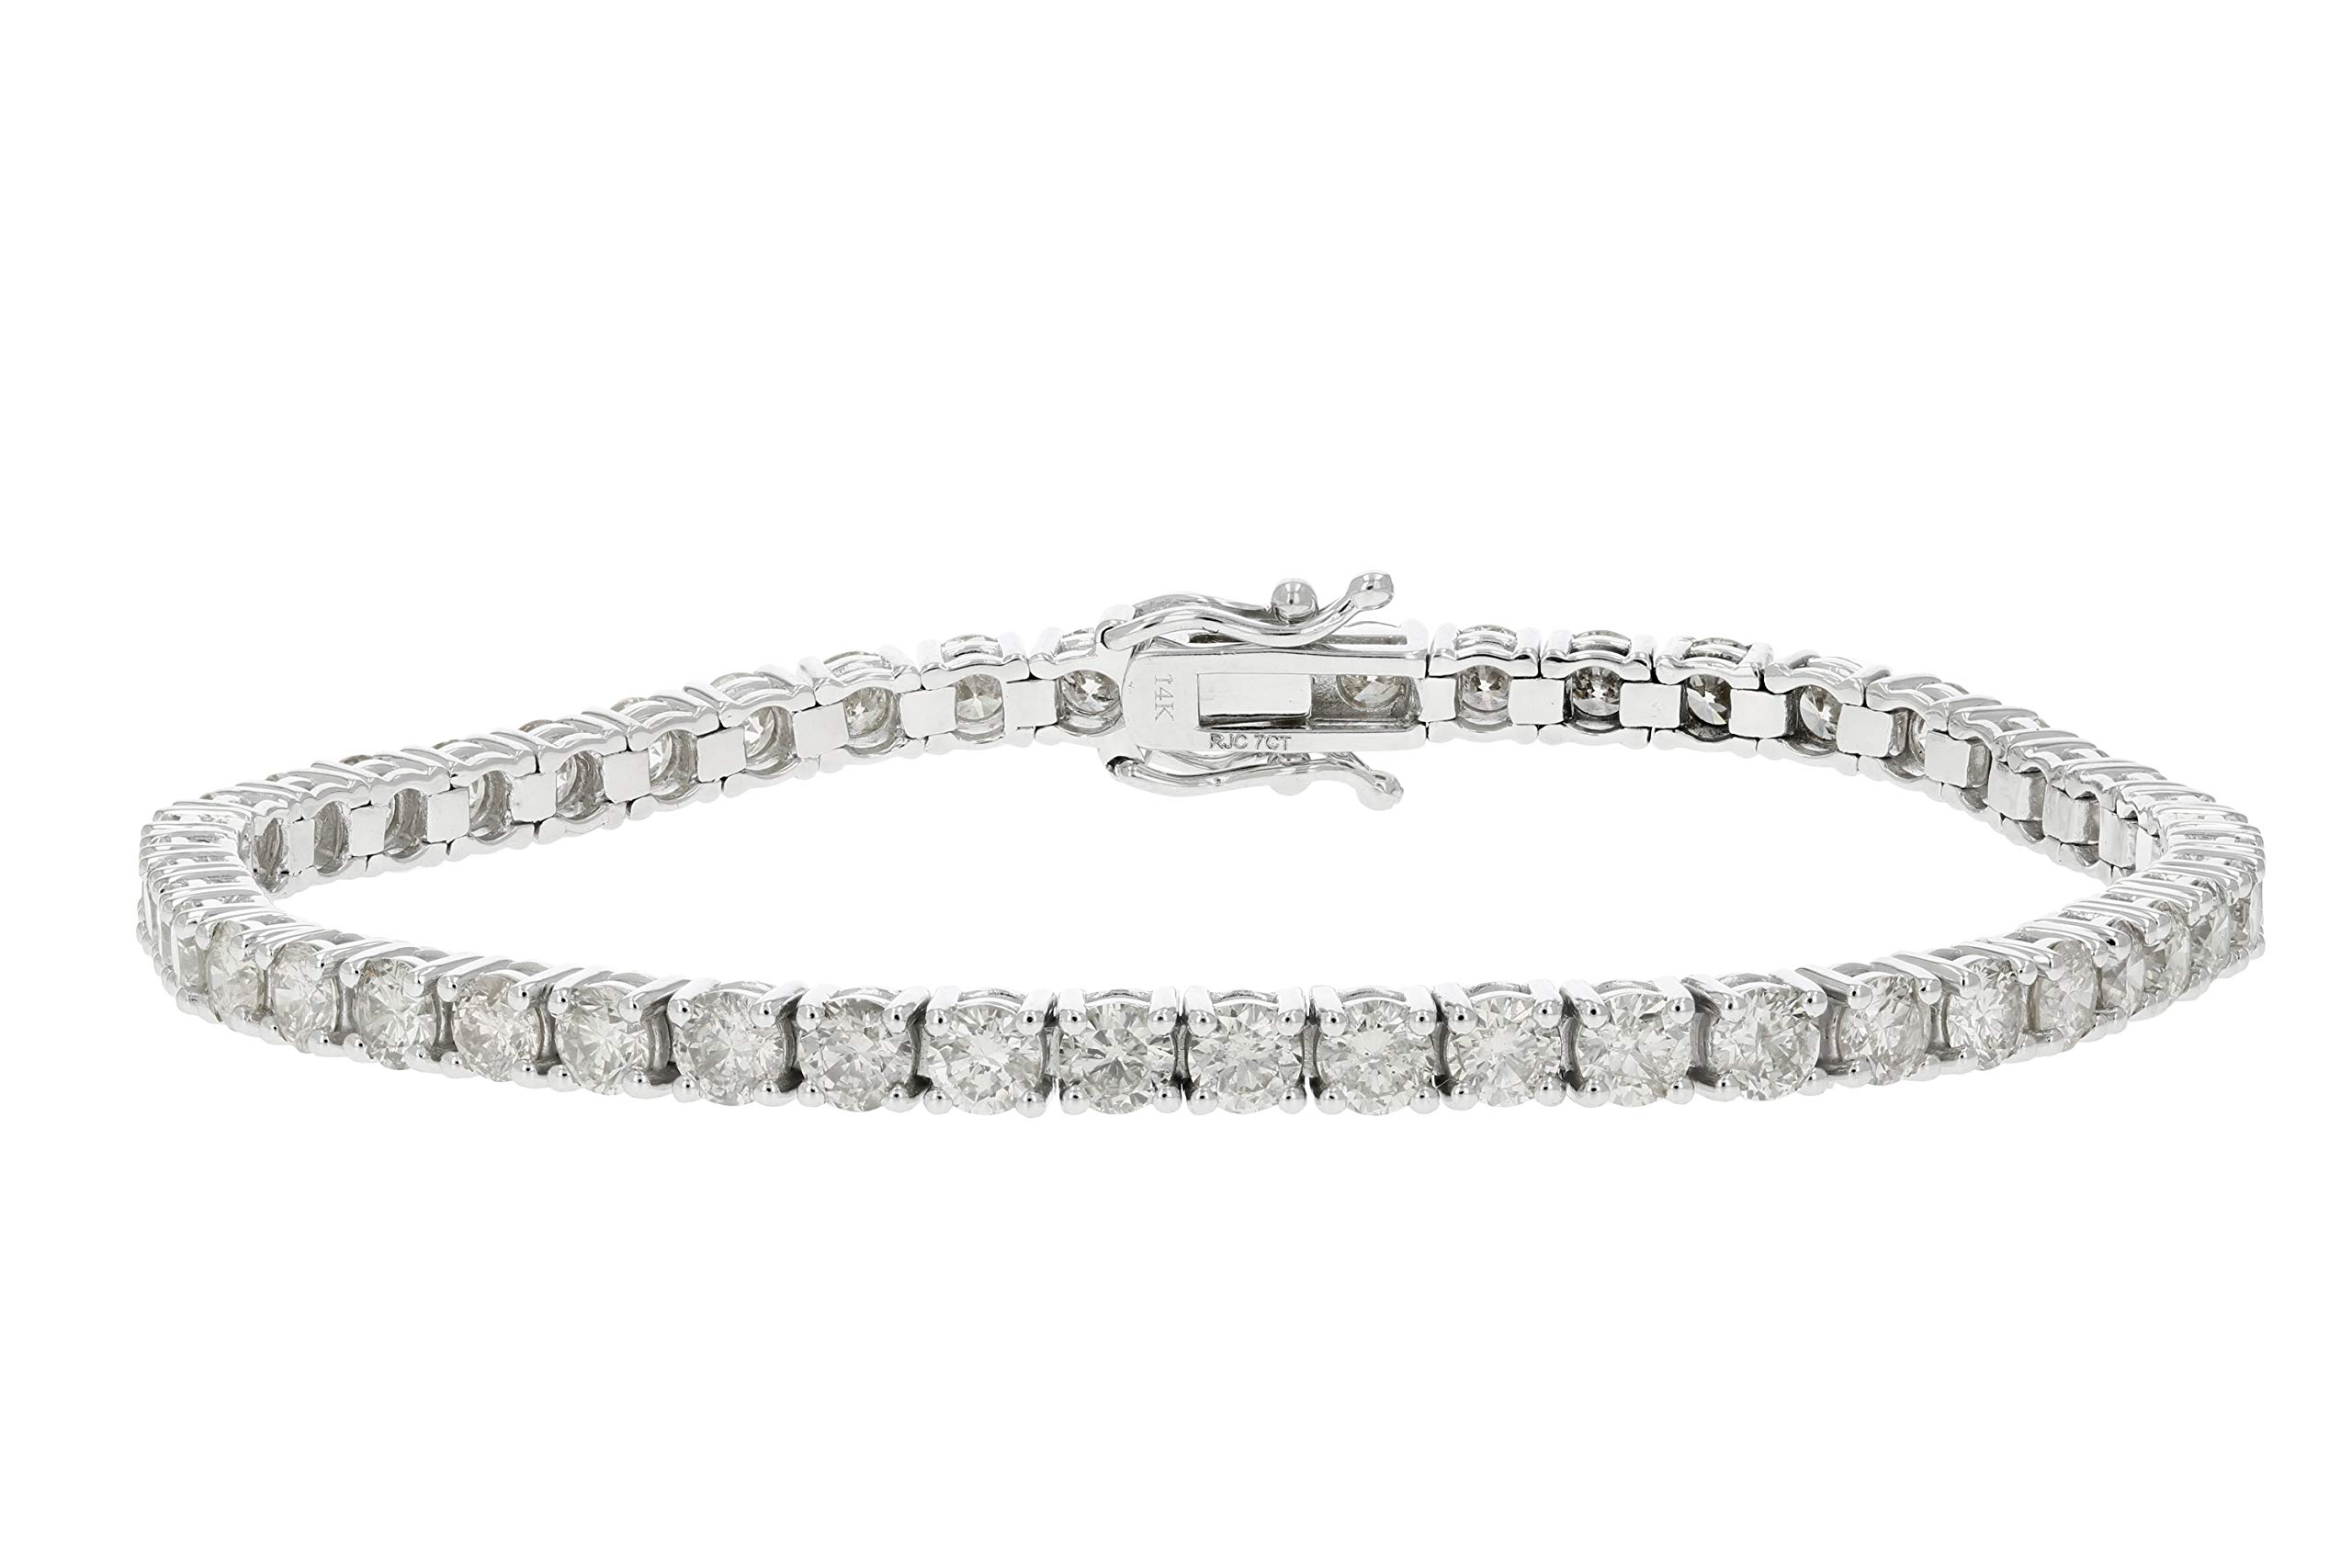 7 cttw Certified Classic Tennis Diamond Bracelet 14K White Gold I1-I2 Clarity L-M Color by Vir Jewels